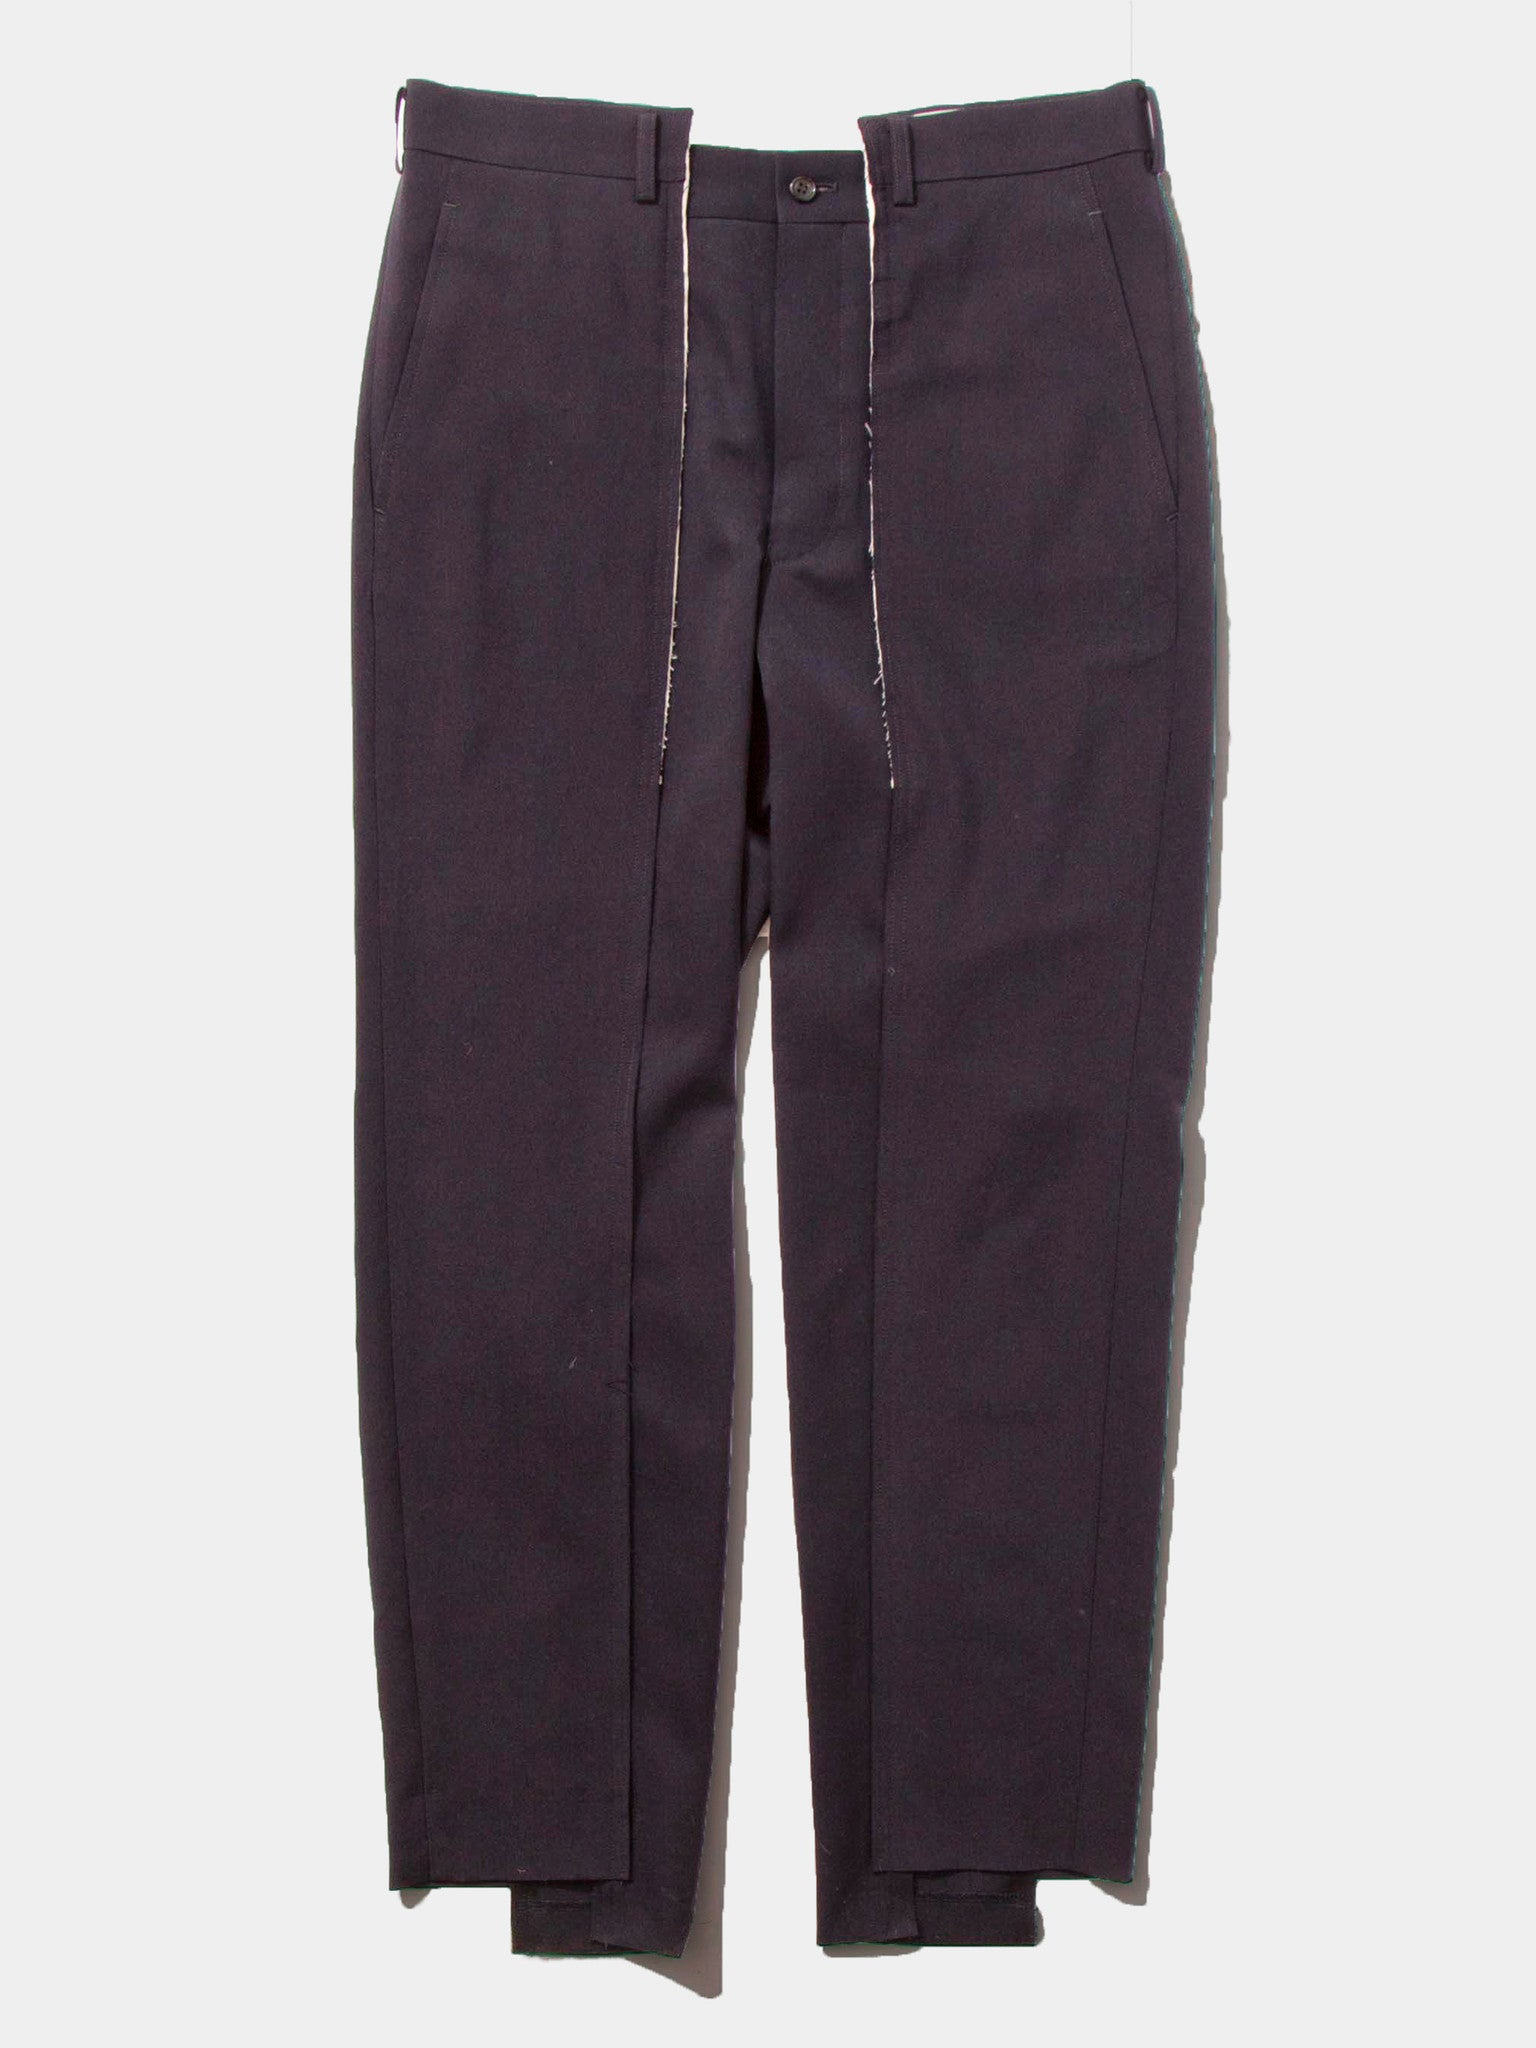 Unconstructed Trouser